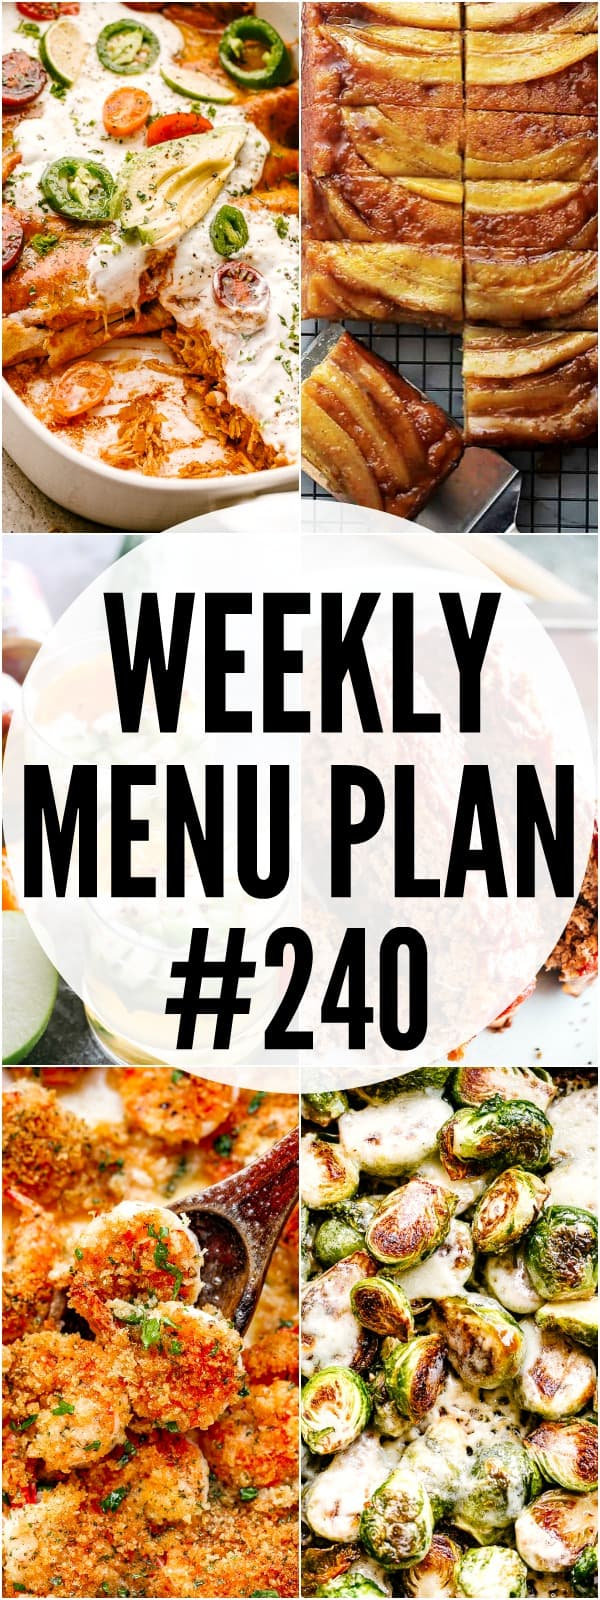 WEEKLY MENU PLAN 240 MAIN IMAGE